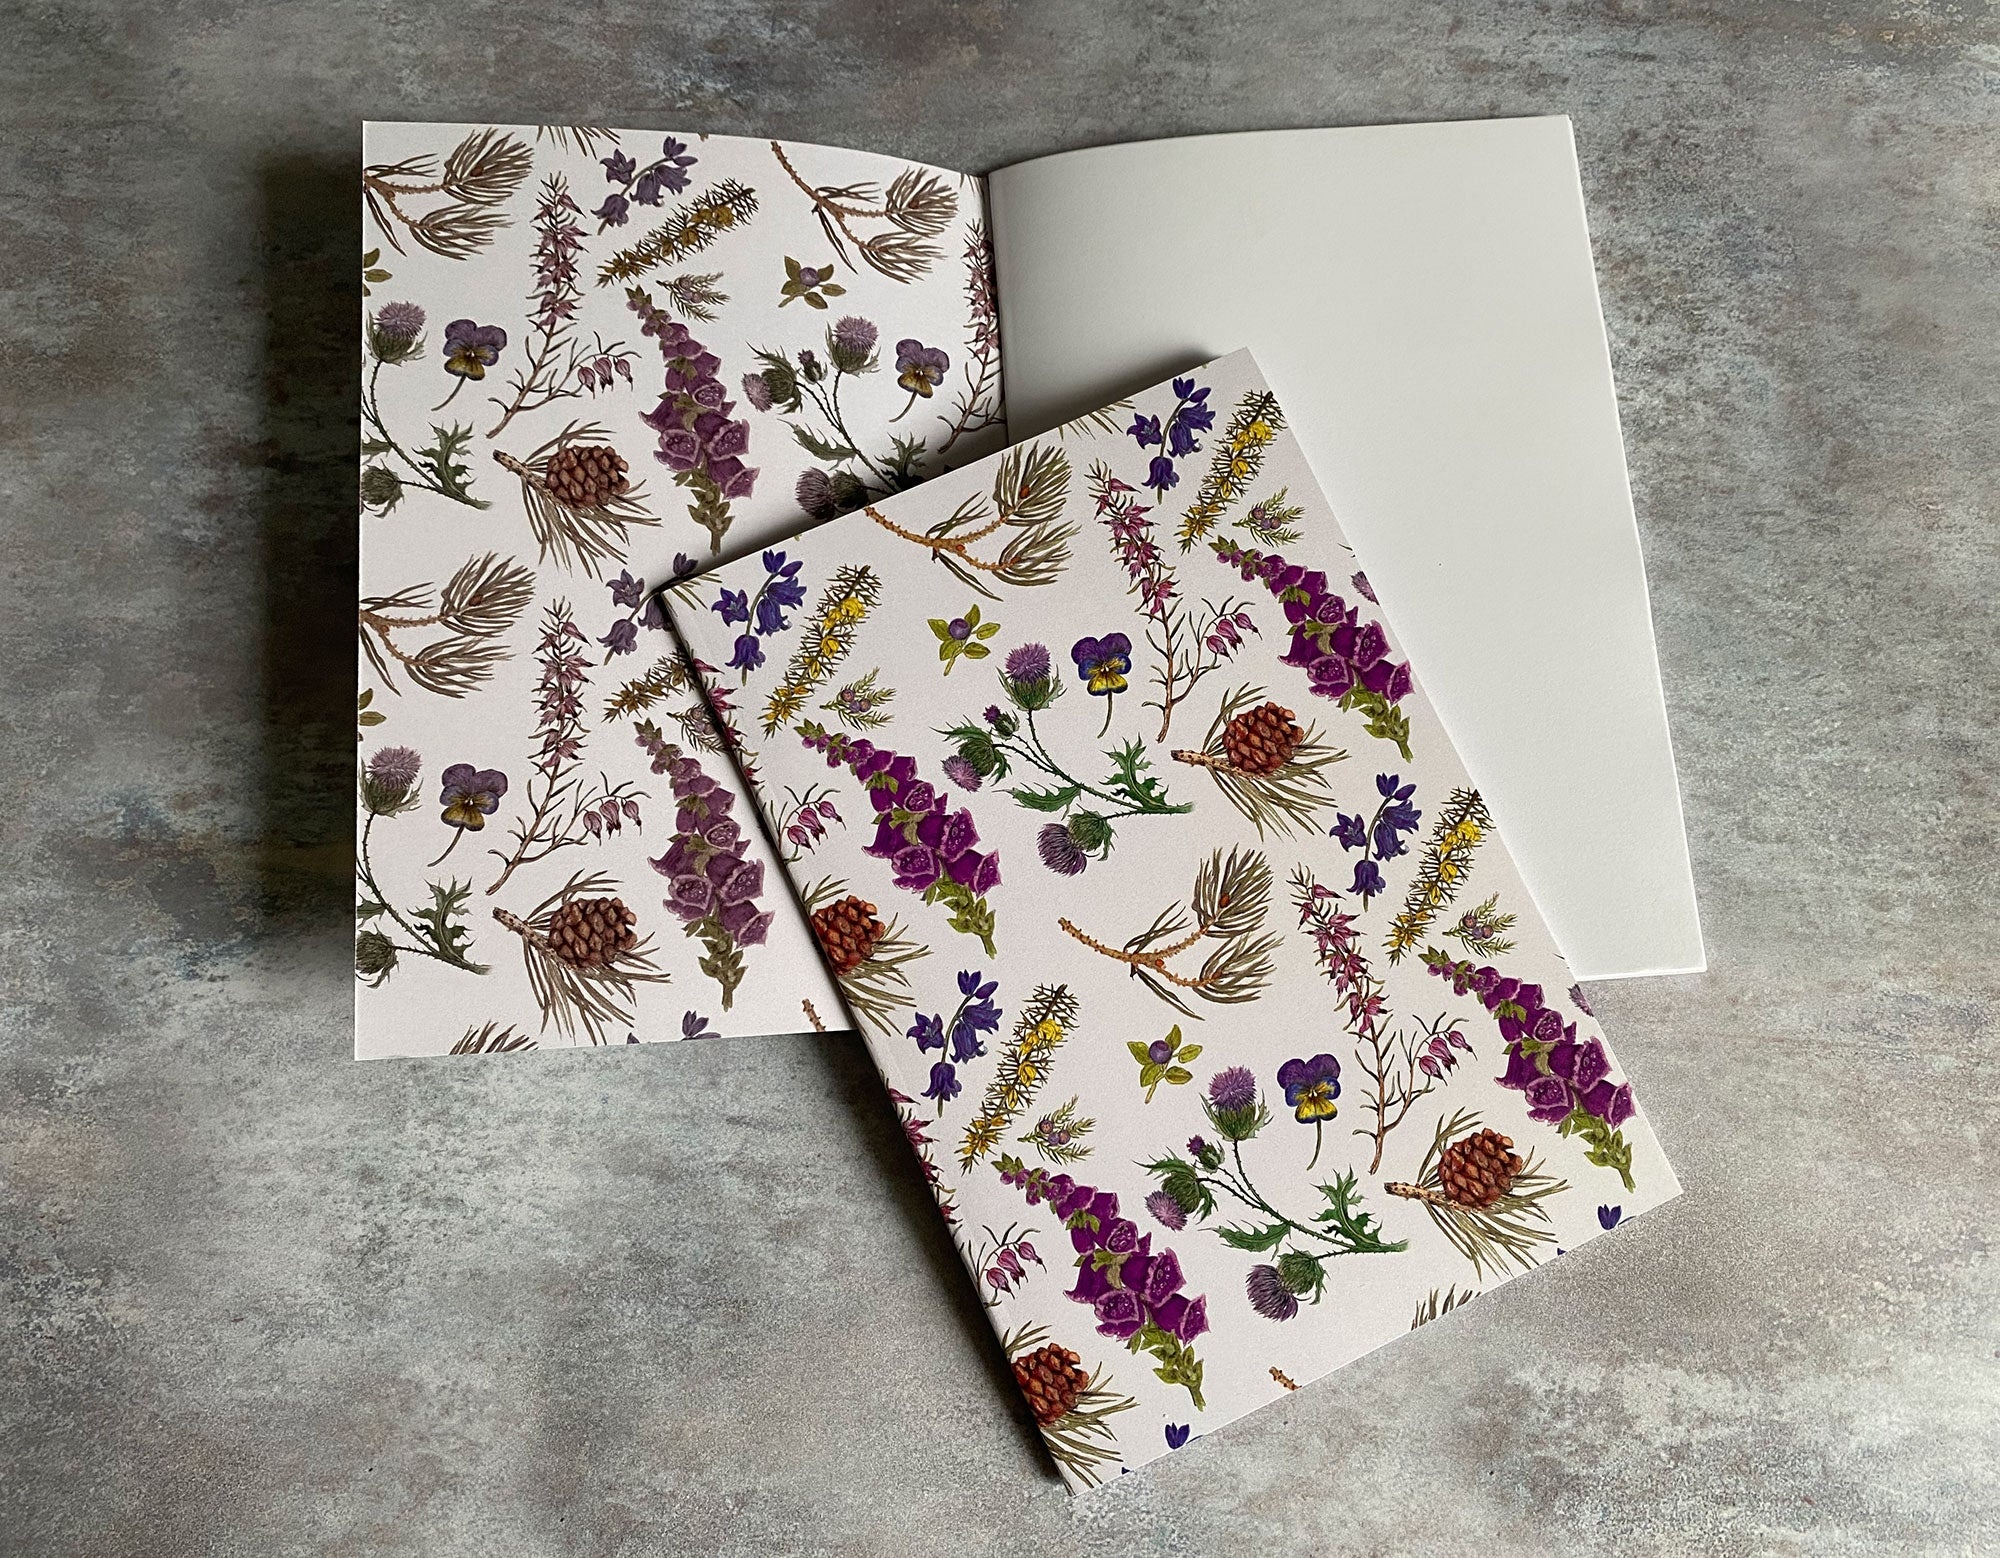 Highland Flora - Scottish wildflower A5 Notebook with plain paper